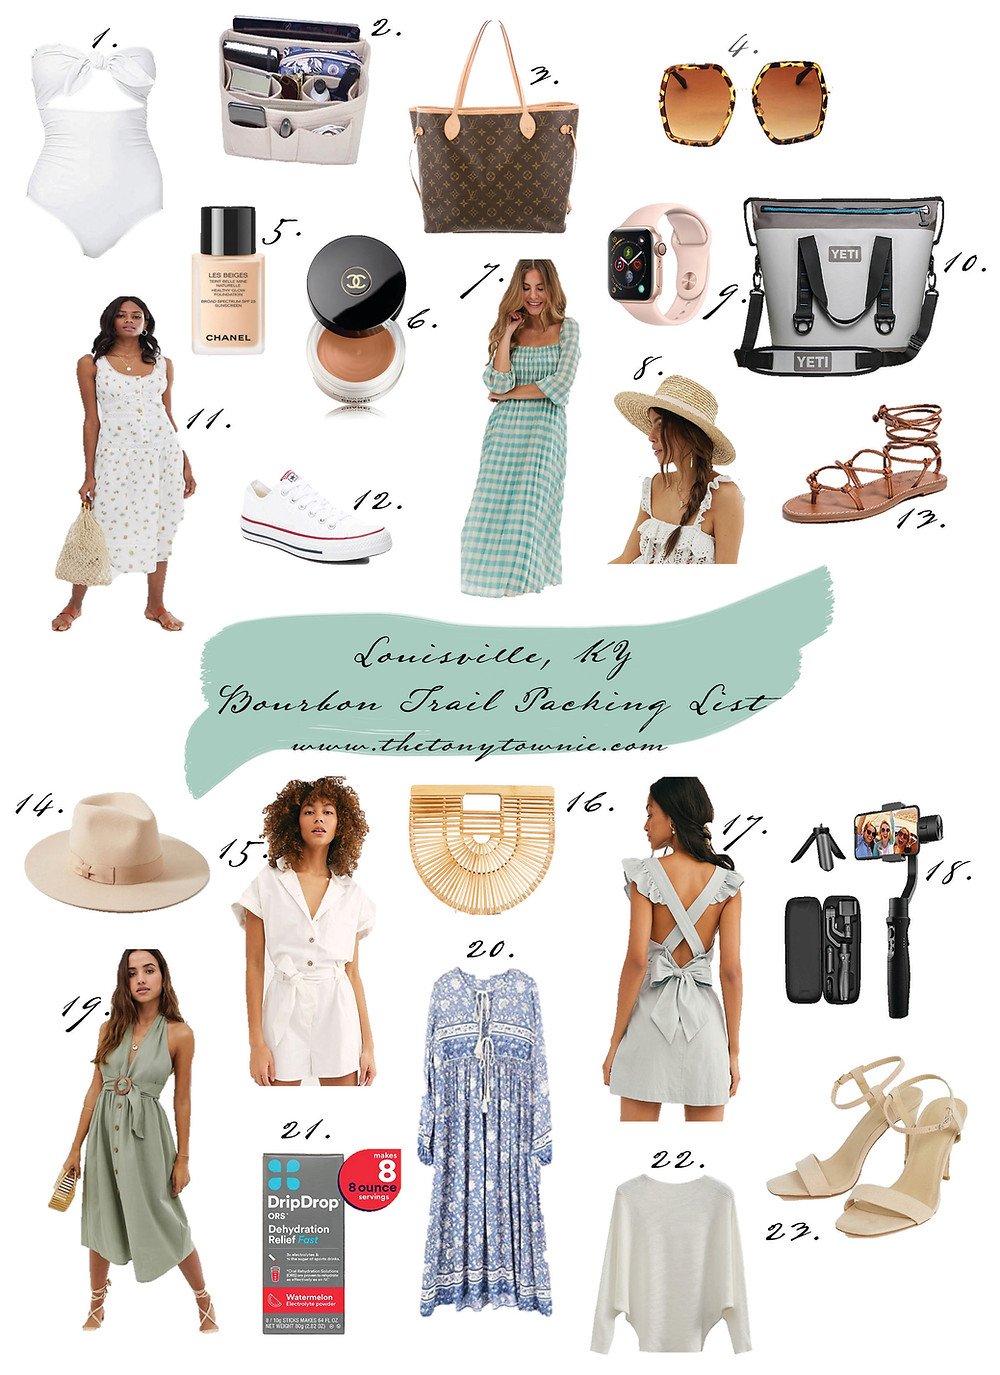 Women's packing list for summer trip to Louisville, Kentucky, and the Bourbon Trail. Southern-inspired dresses and rompers. Travel essentials for the stylish traveler.